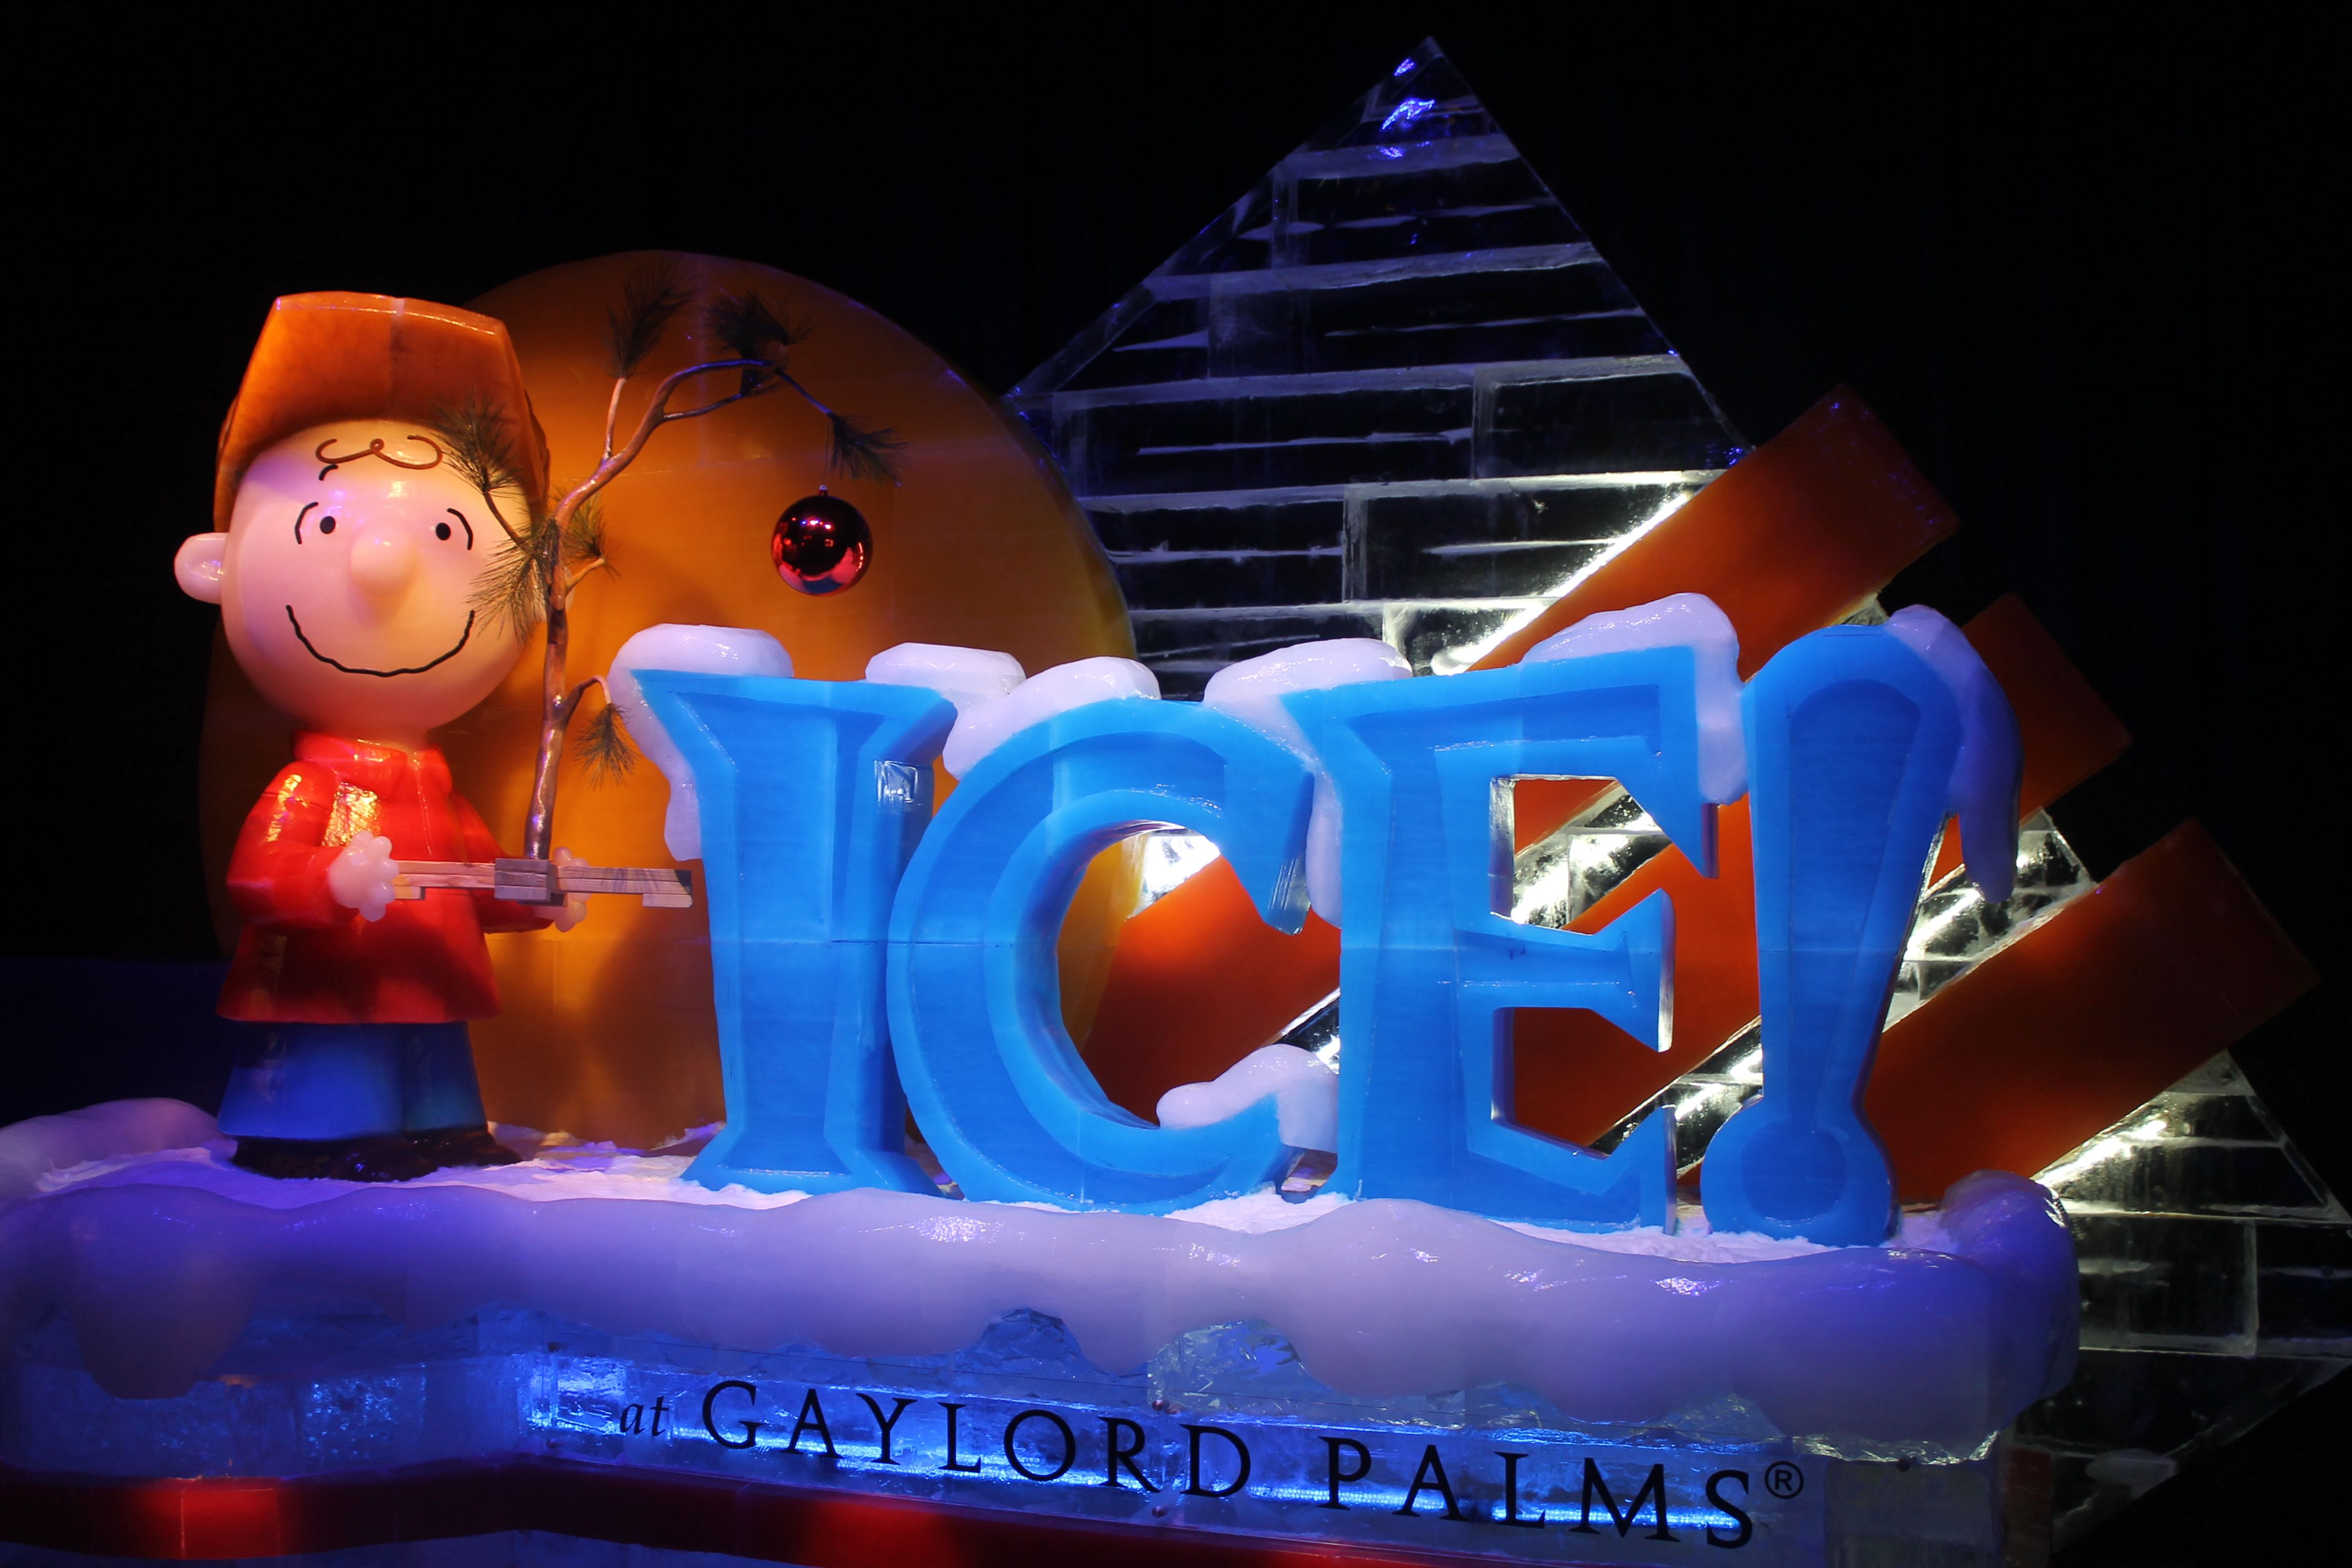 ICE Gaylord Palms